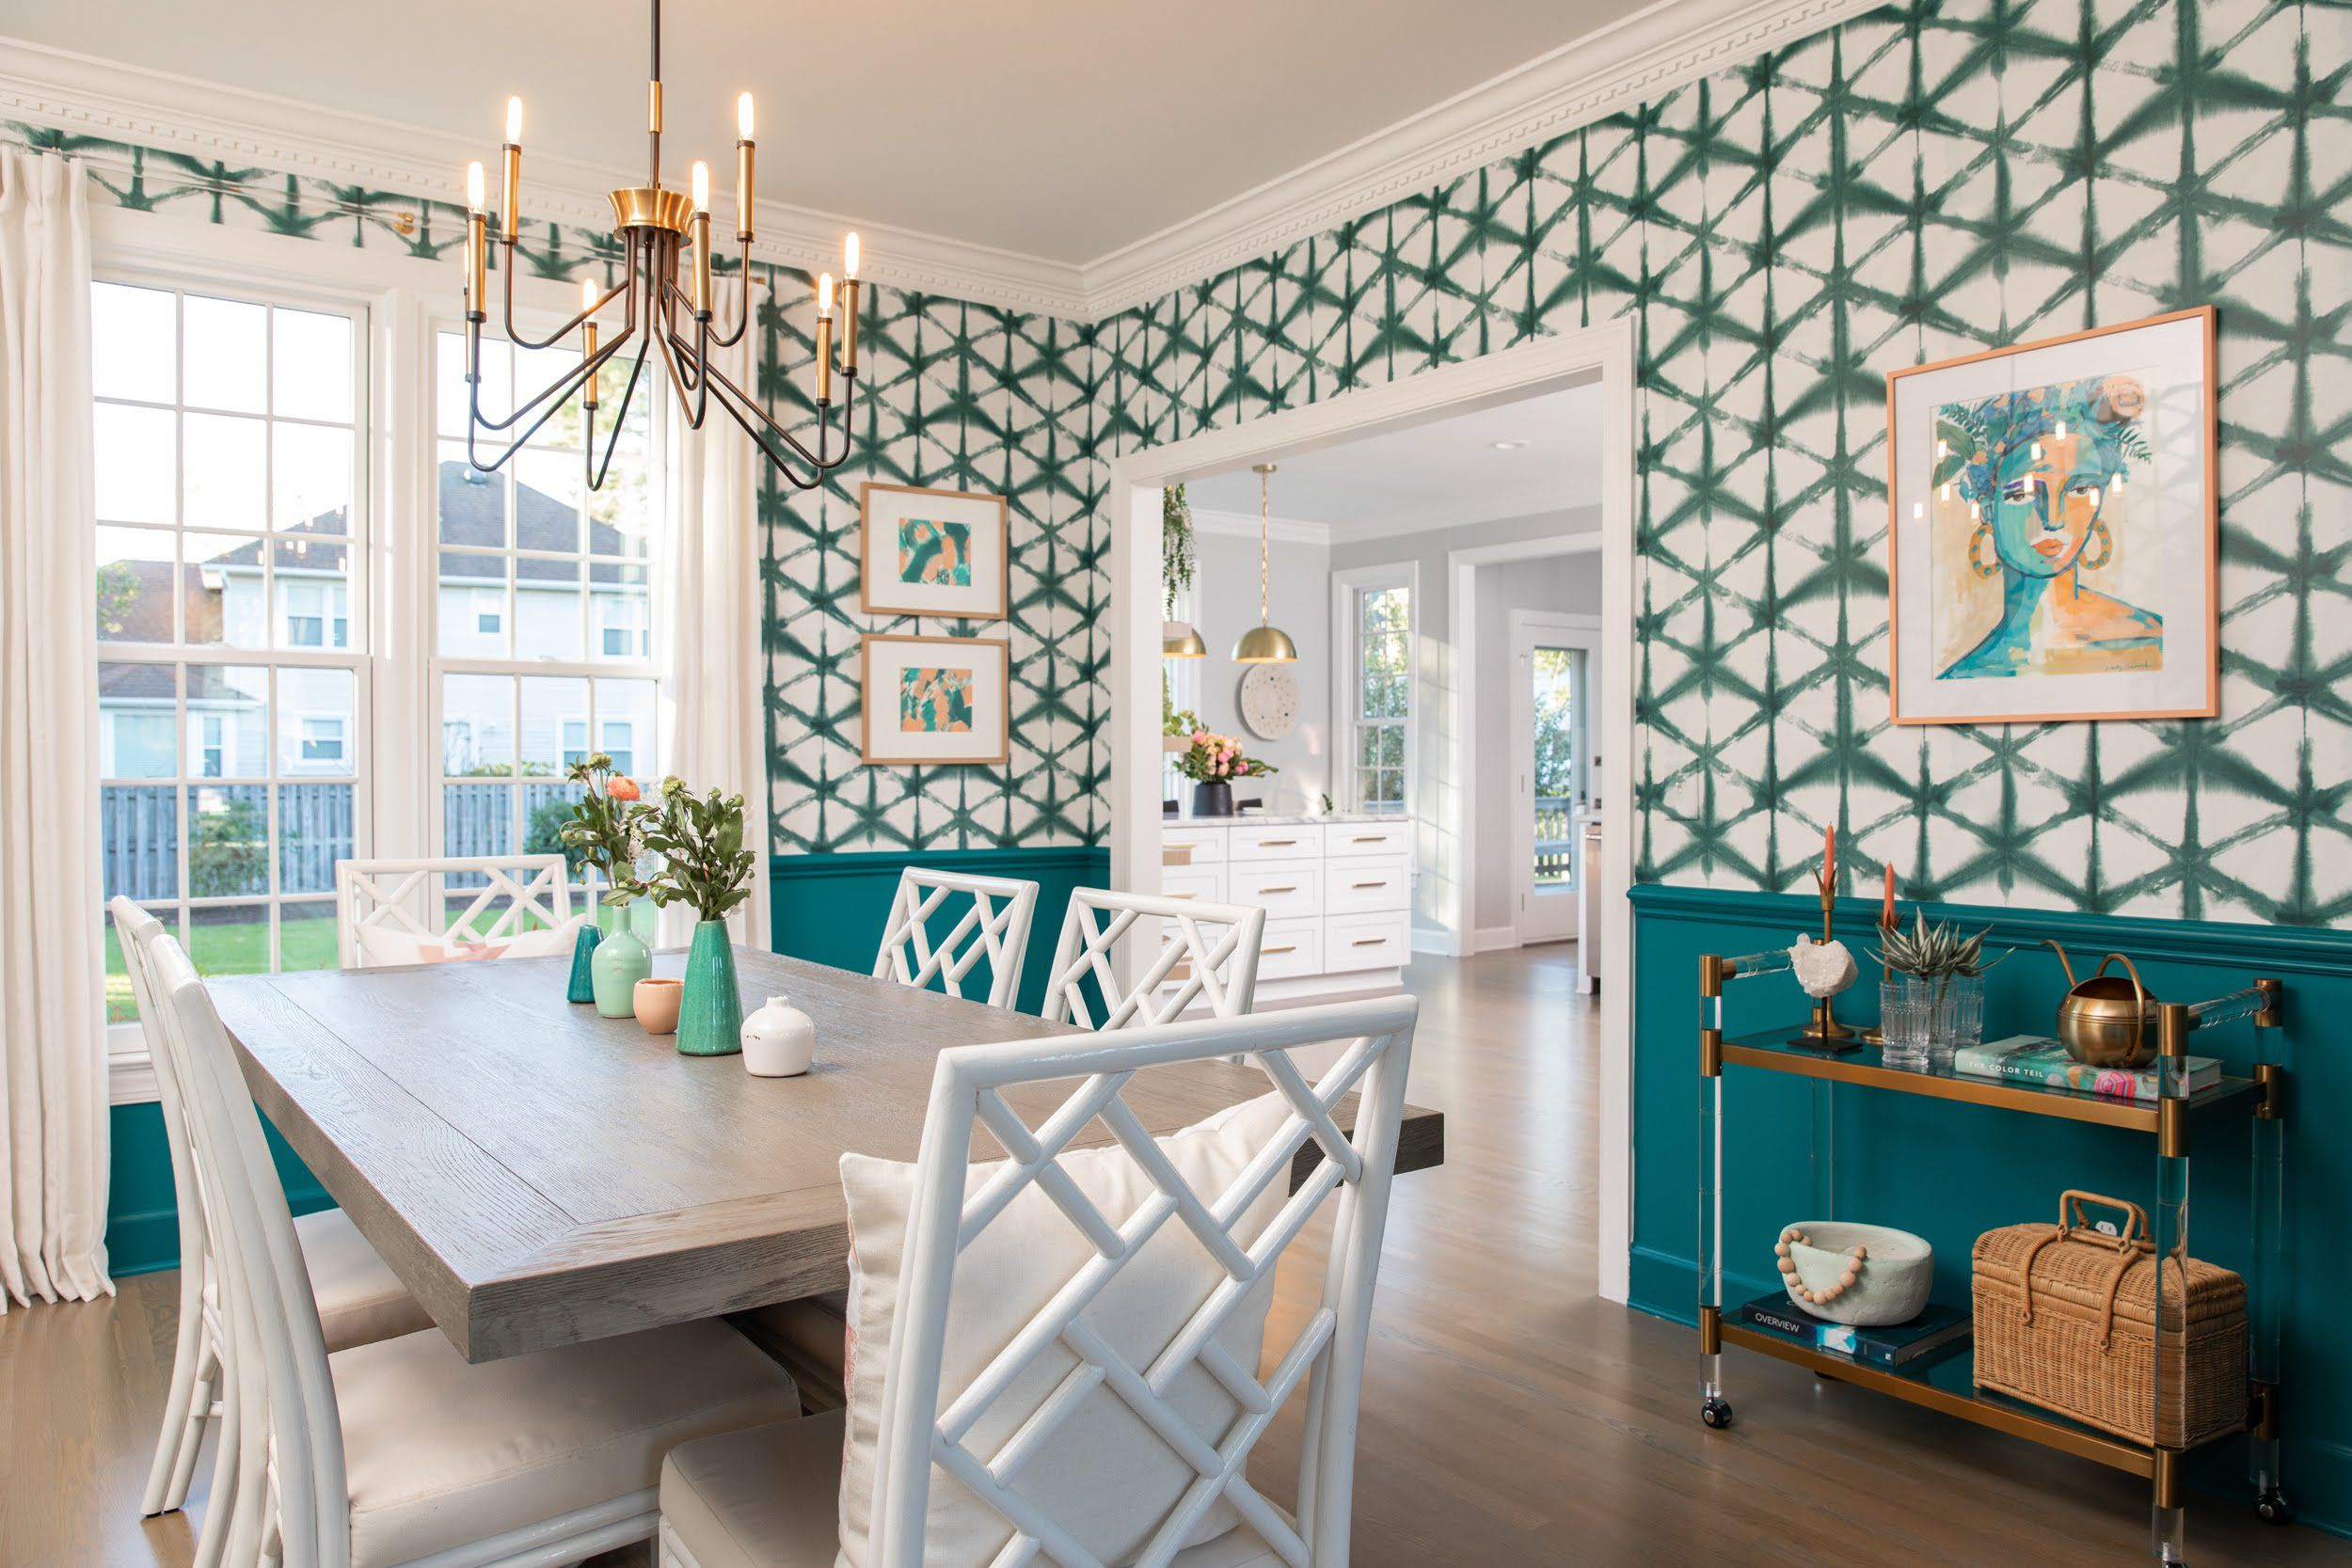 Shibori Star Wallpaper in an Eclectic Country Dining Room by Gabbi Zaccheria • Photo by Andrew Sherman